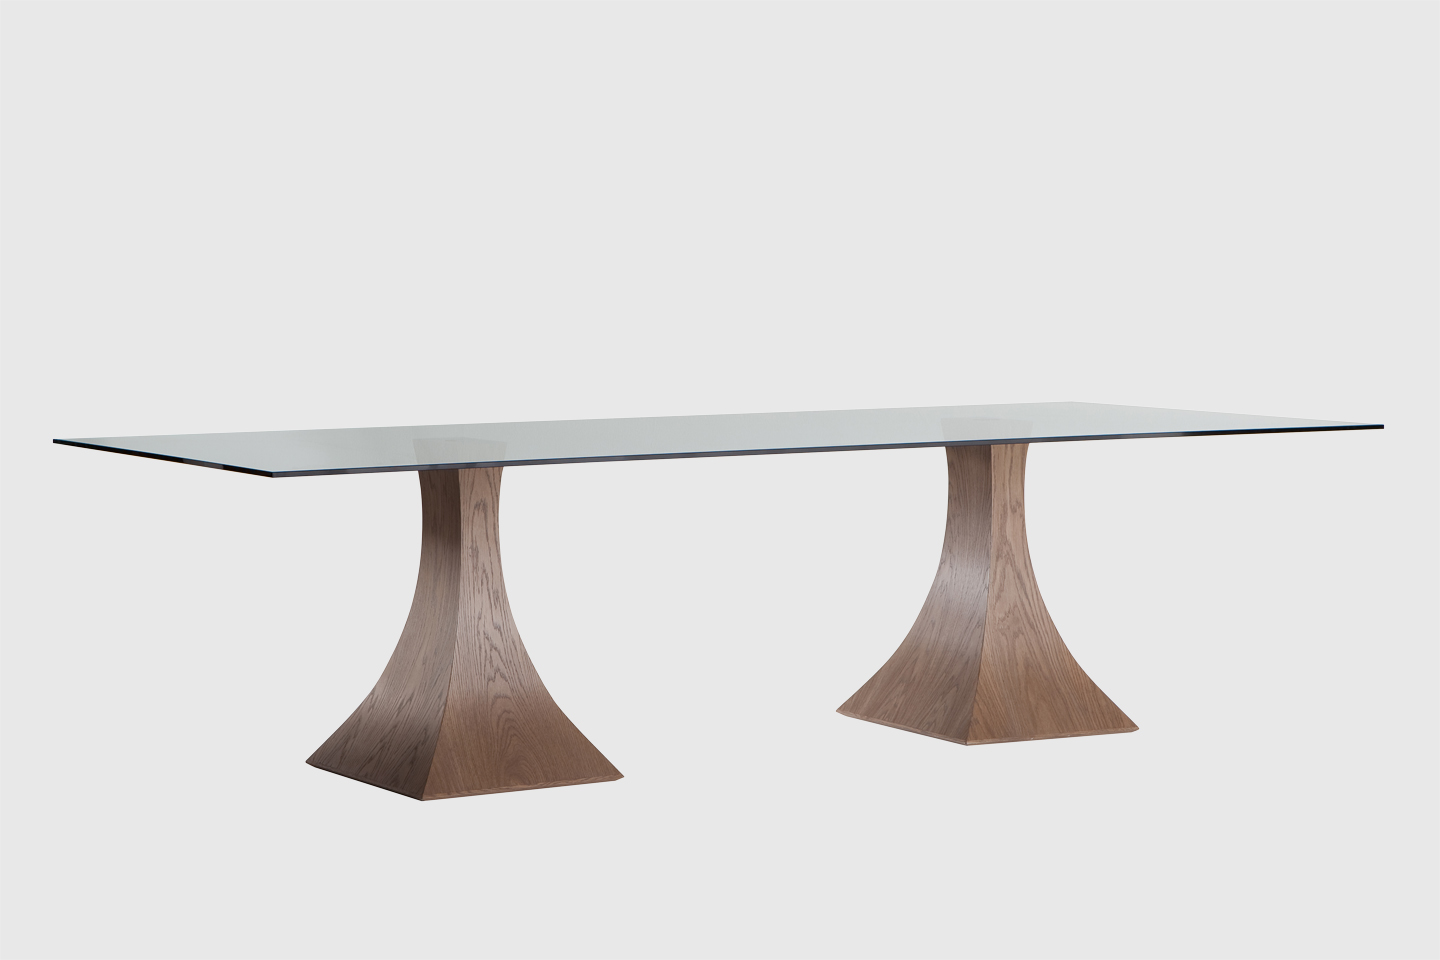 Dining Tables Archives Michael Northcroft : BB809g Tulip Pedestal Long Dining Table Brown from www.michaelnorthcroft.com size 1440 x 960 jpeg 204kB